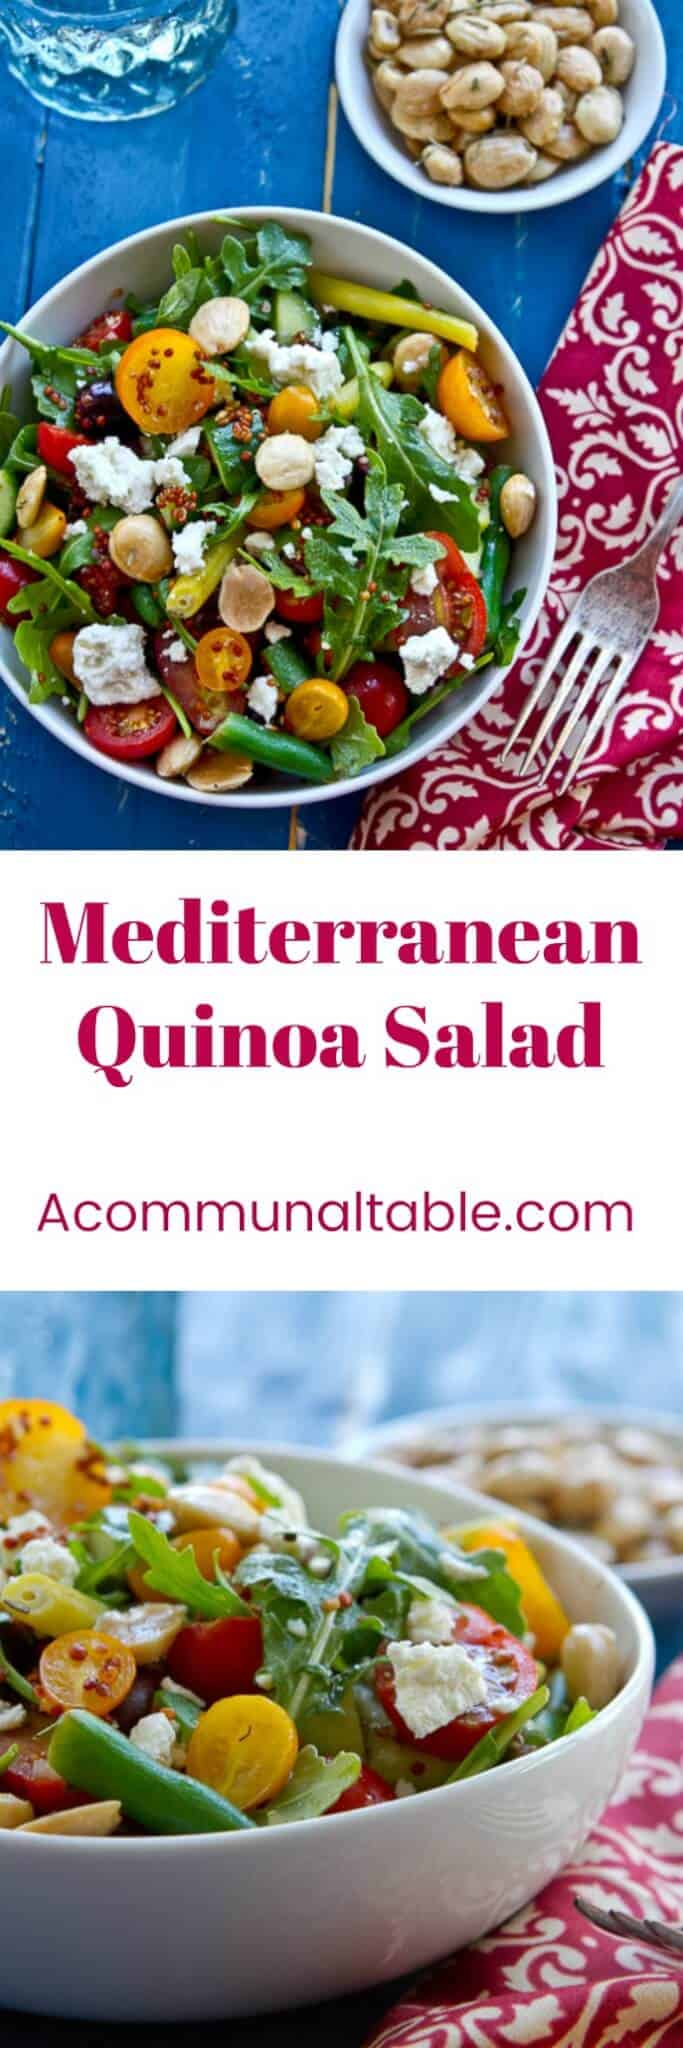 Easy and healthy Mediterranean Quinoa Salad recipe with a lemon vinaigrette. Tomatoes, arugula, feta and almonds combine in this make ahead side dish!